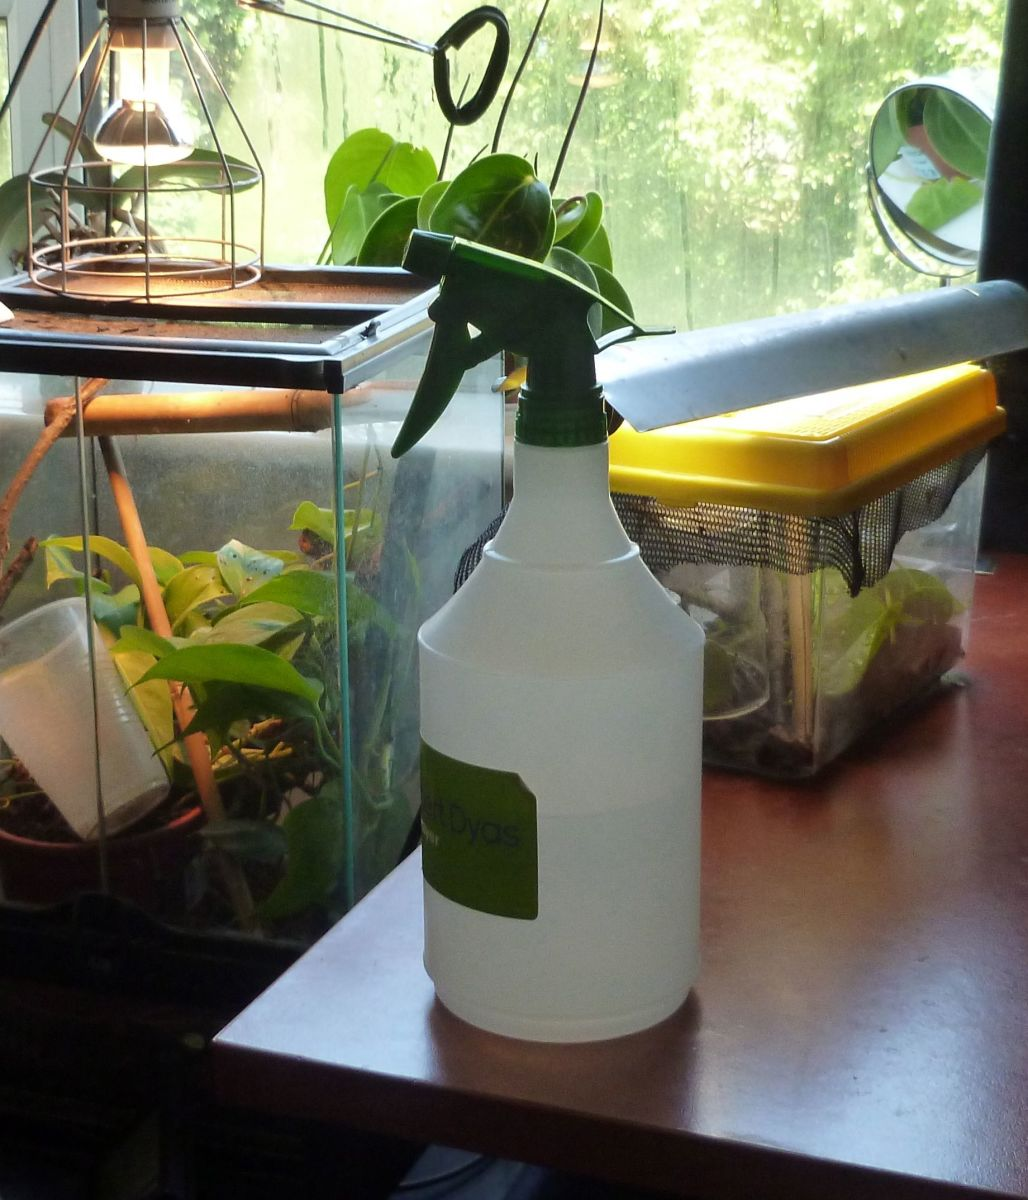 The water spray bottle is your friend when raising geckos.